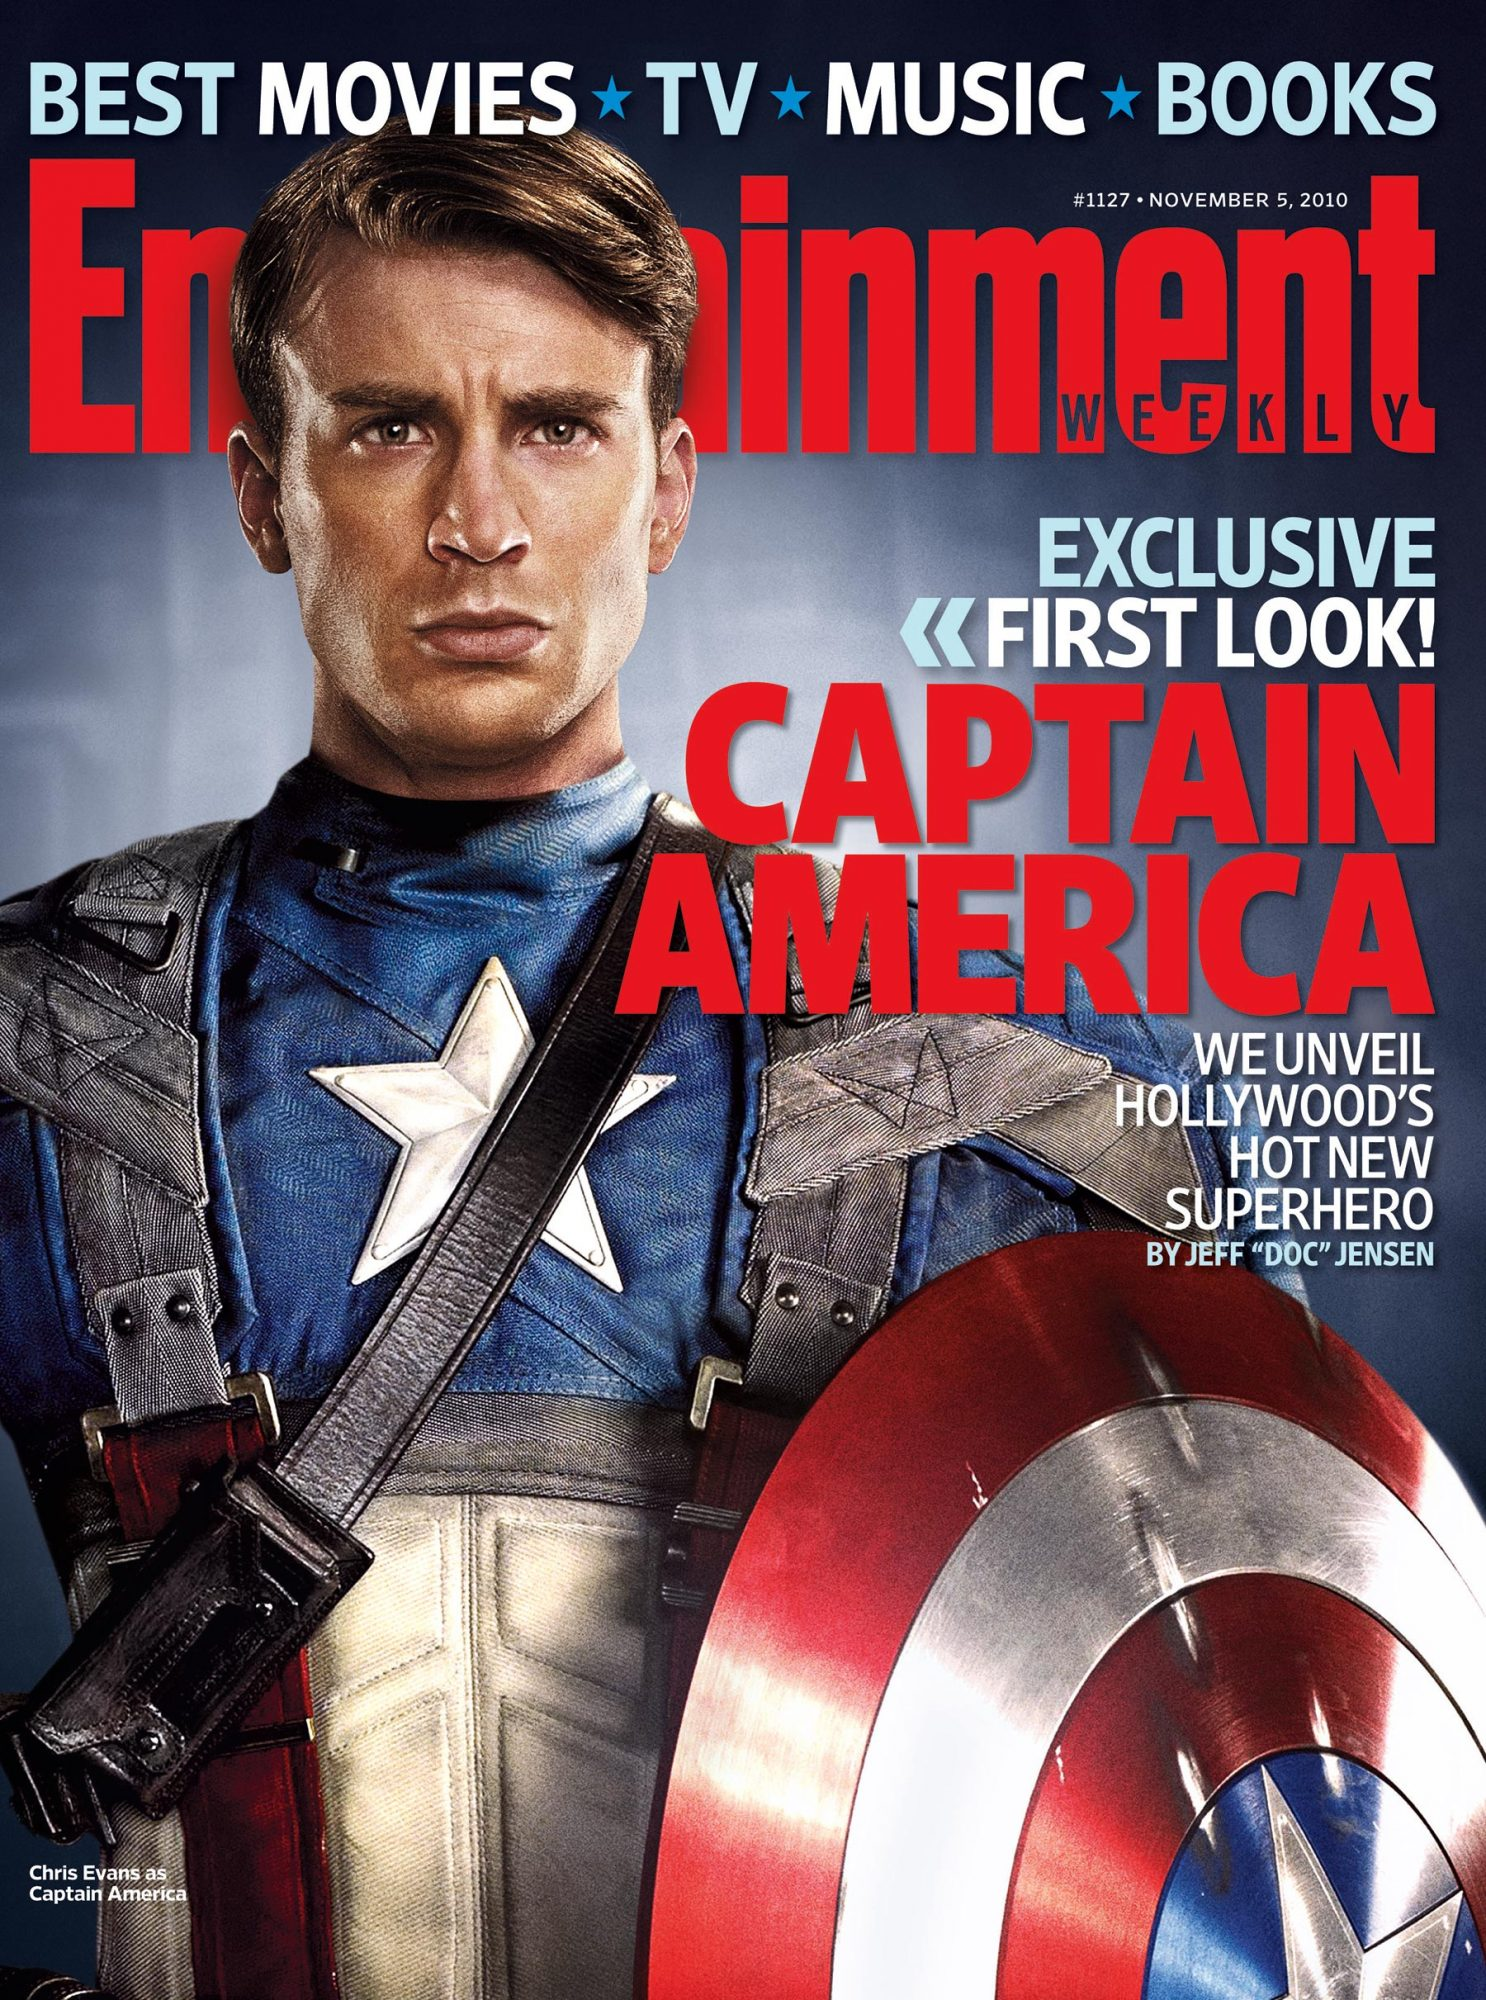 Entertainment Weekly Issue 1127Nov 5, 2010Captain America